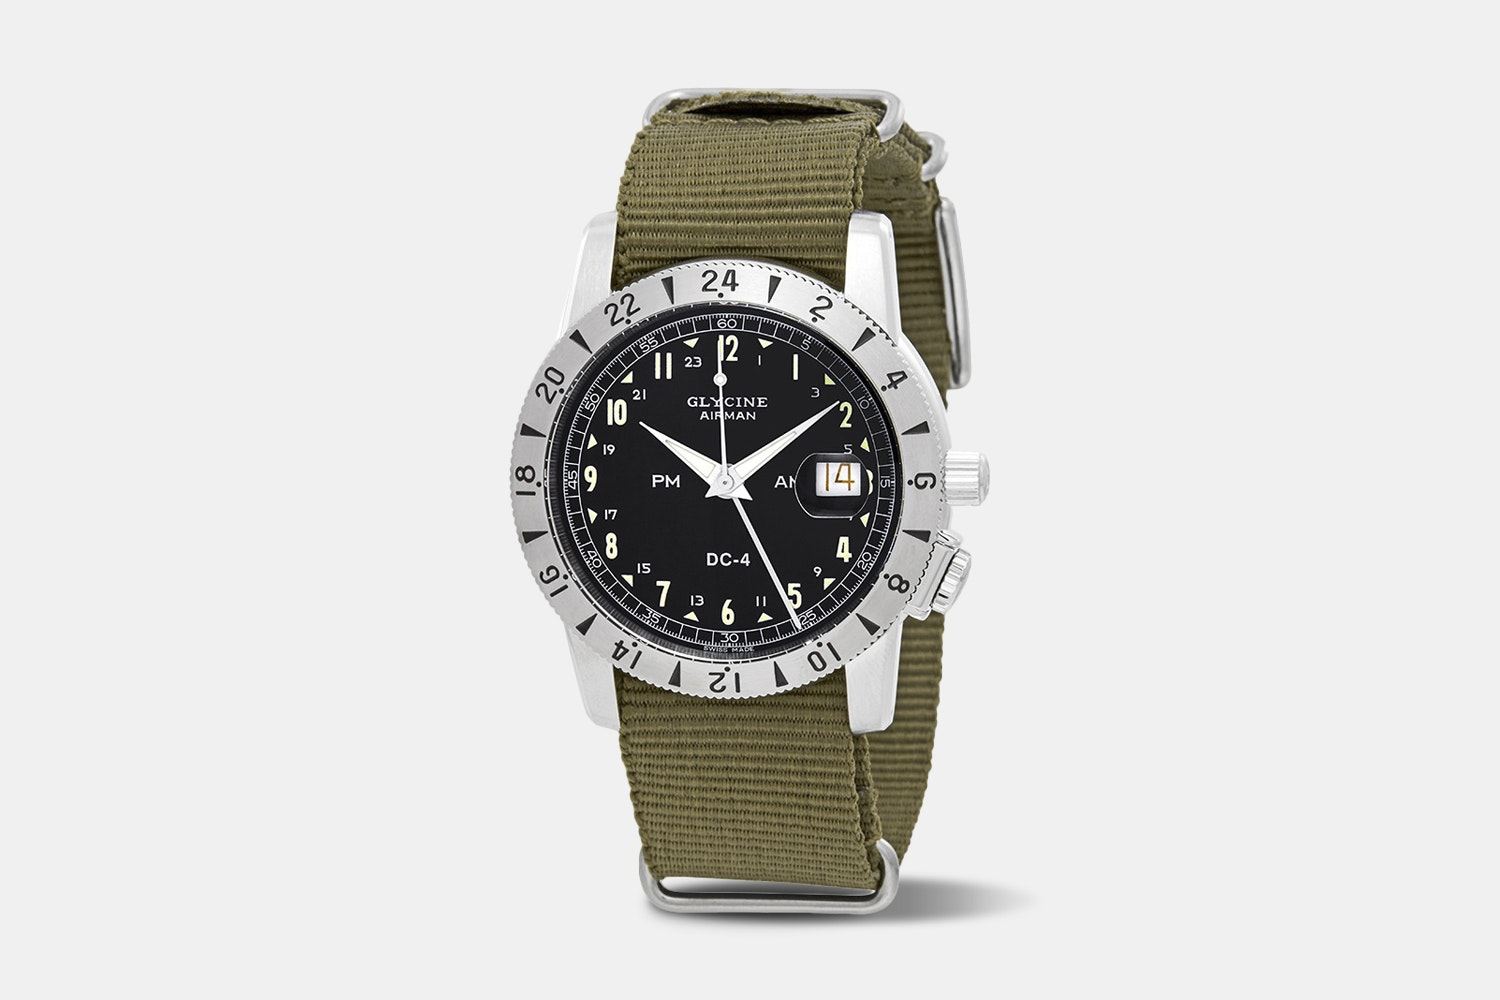 Glycine Airman Vintage 1953 Automatic Watch